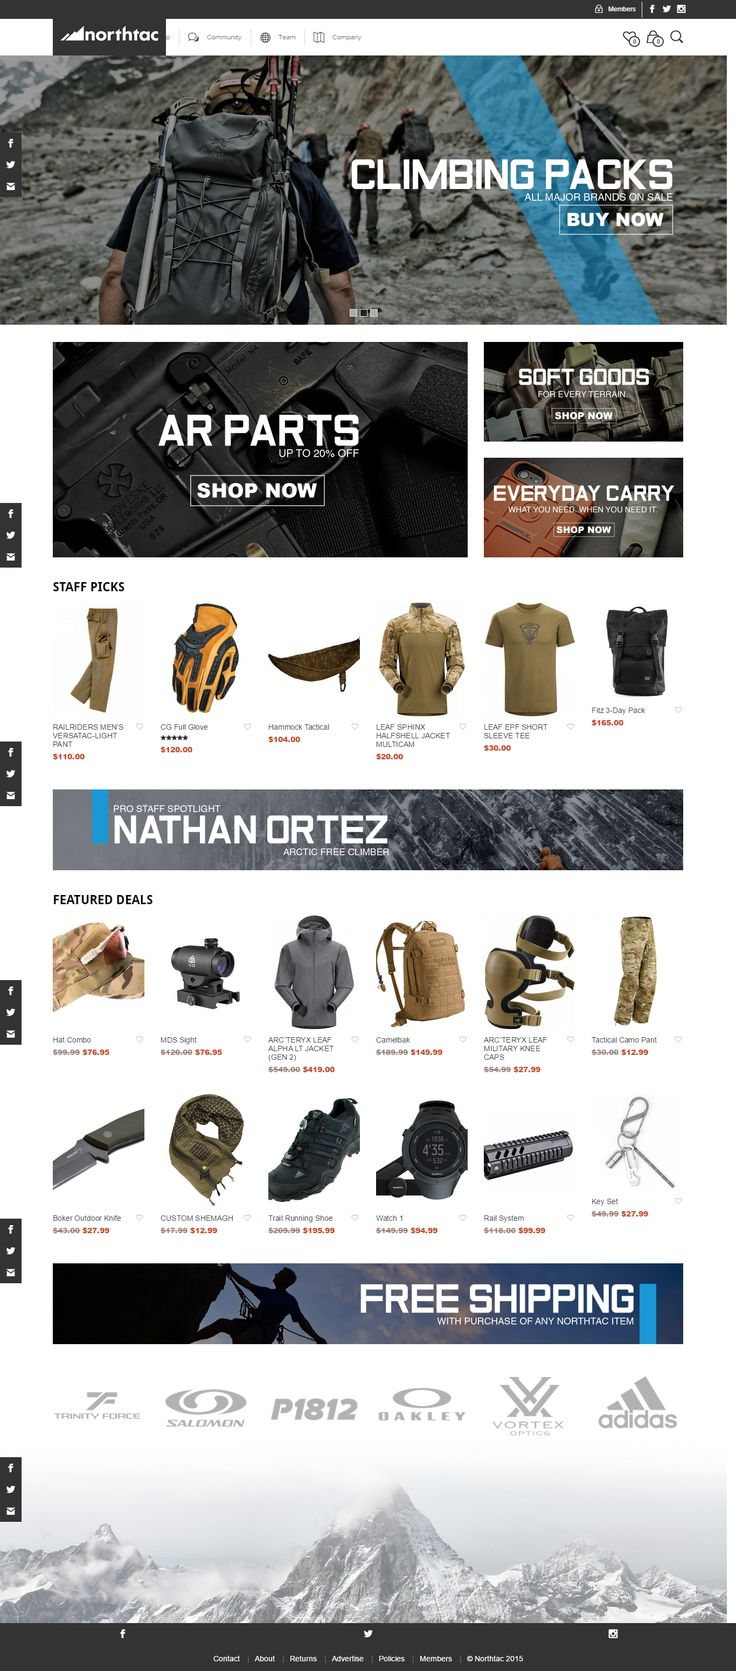 northtac.com is powered by Mr Tailor WP theme. http://themeforest.net/item/mr-tailor-responsive-woocommerce-theme/7292110?&utm_source=pinterest.com&utm_medium=social&utm_content=northac&utm_campaign=showcase #adventures #wordpress #survival #climbingpacks #ecommerce